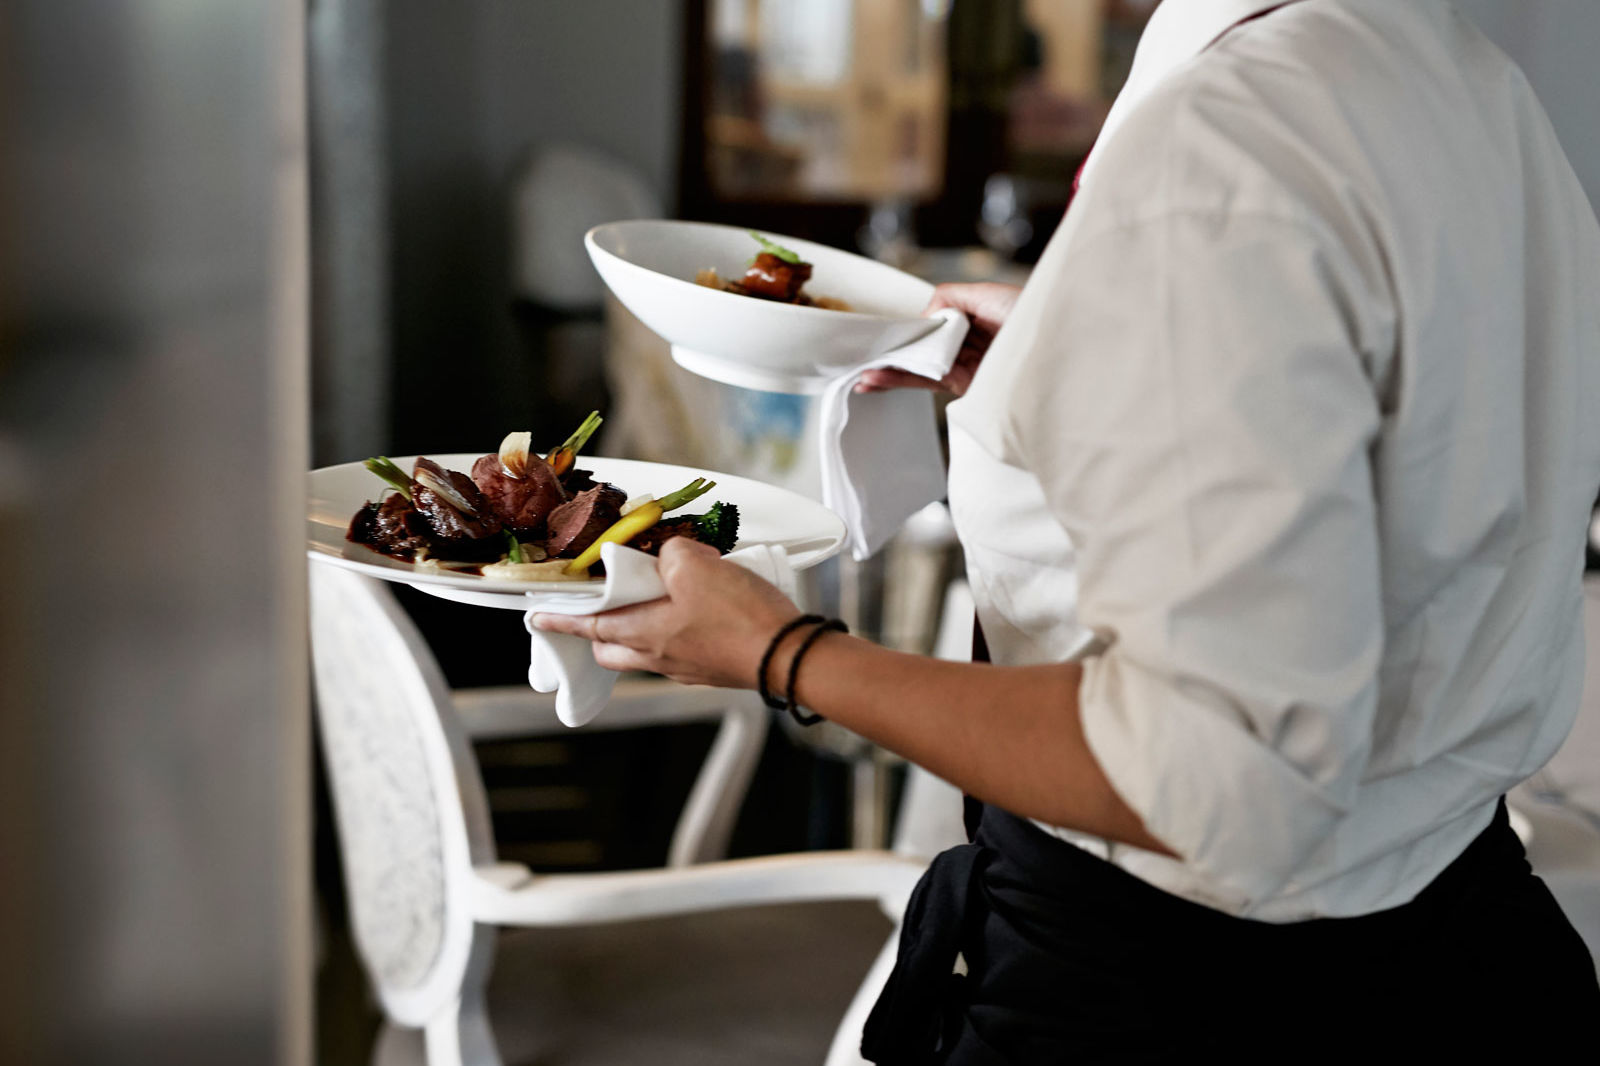 The Right Way to Send Food Back, According to Waiters and Chefs